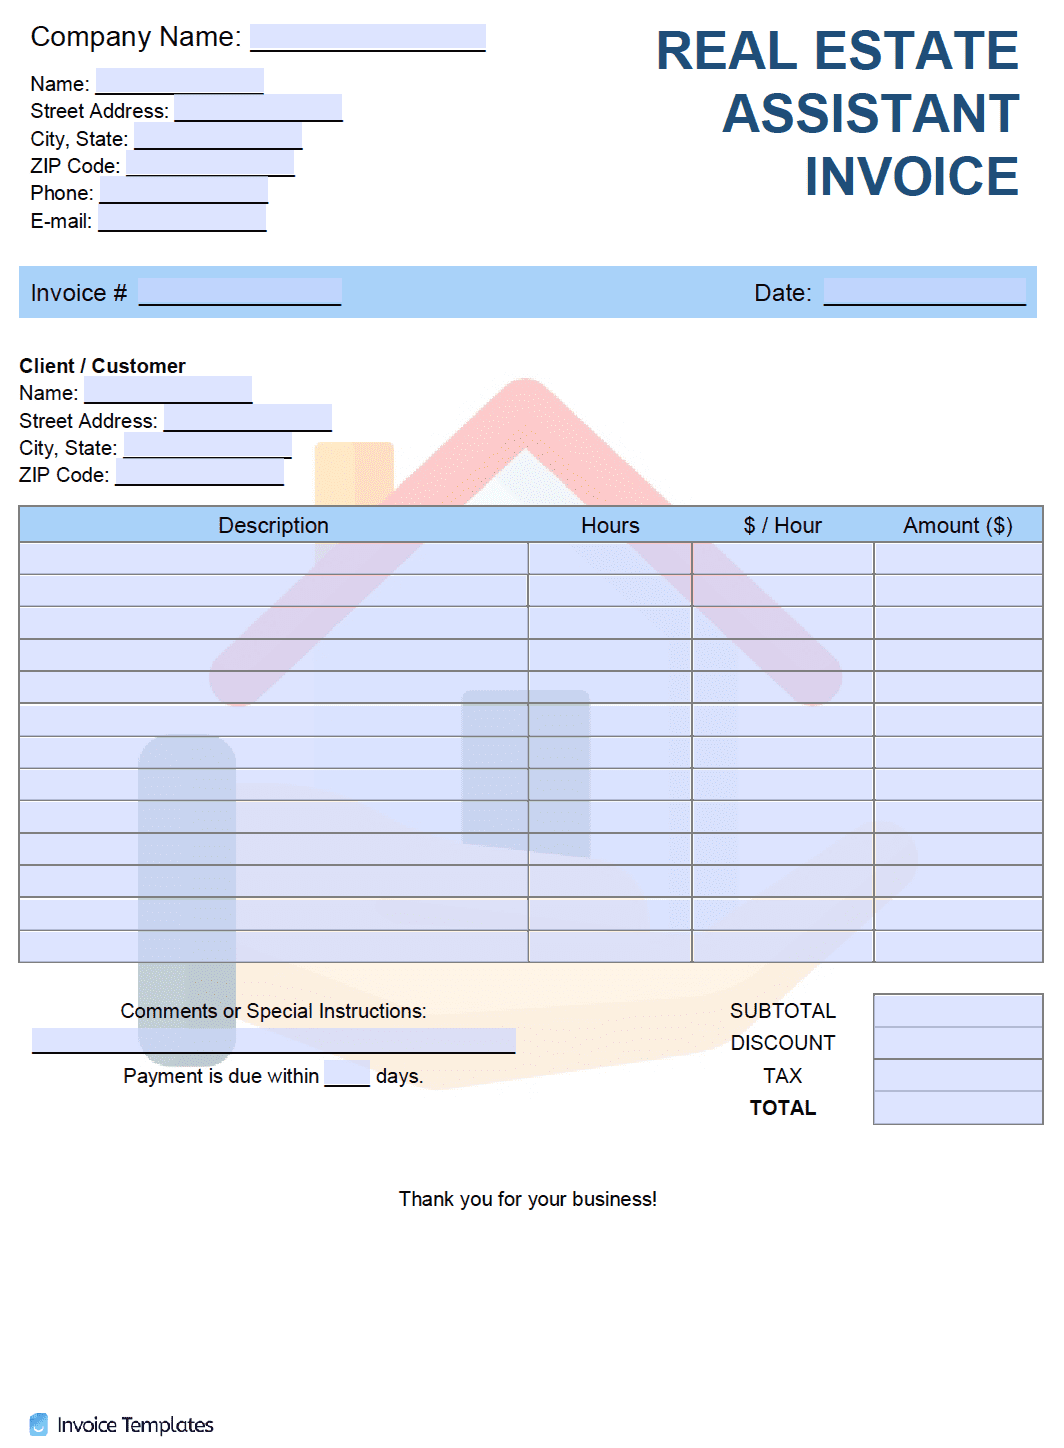 Free Real Estate Assistant Invoice Template Pdf Word Excel